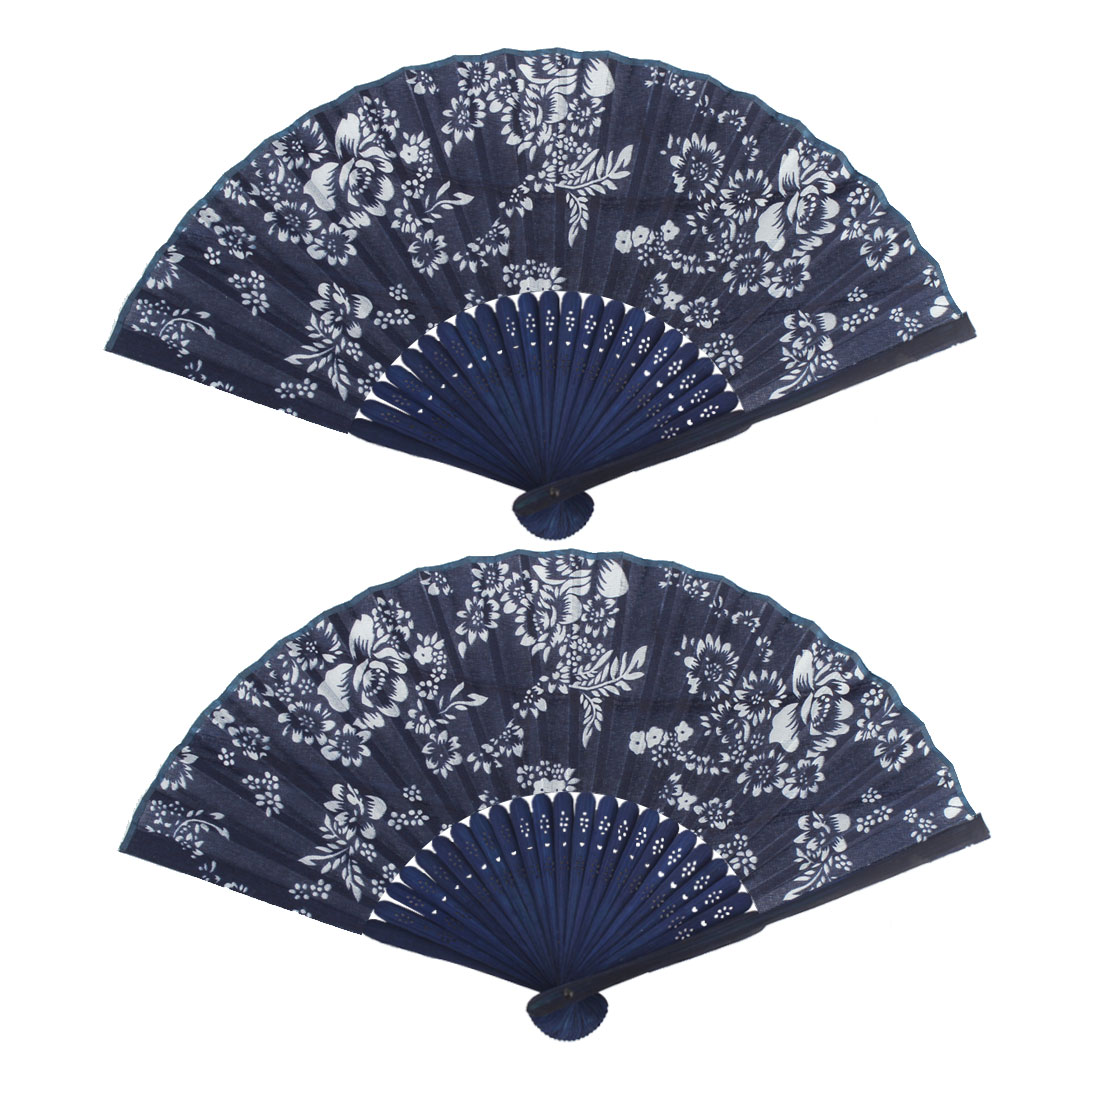 Stage Performance Flower Pattern Exquisite Elegant Decorative Folding Fan 2 PCS